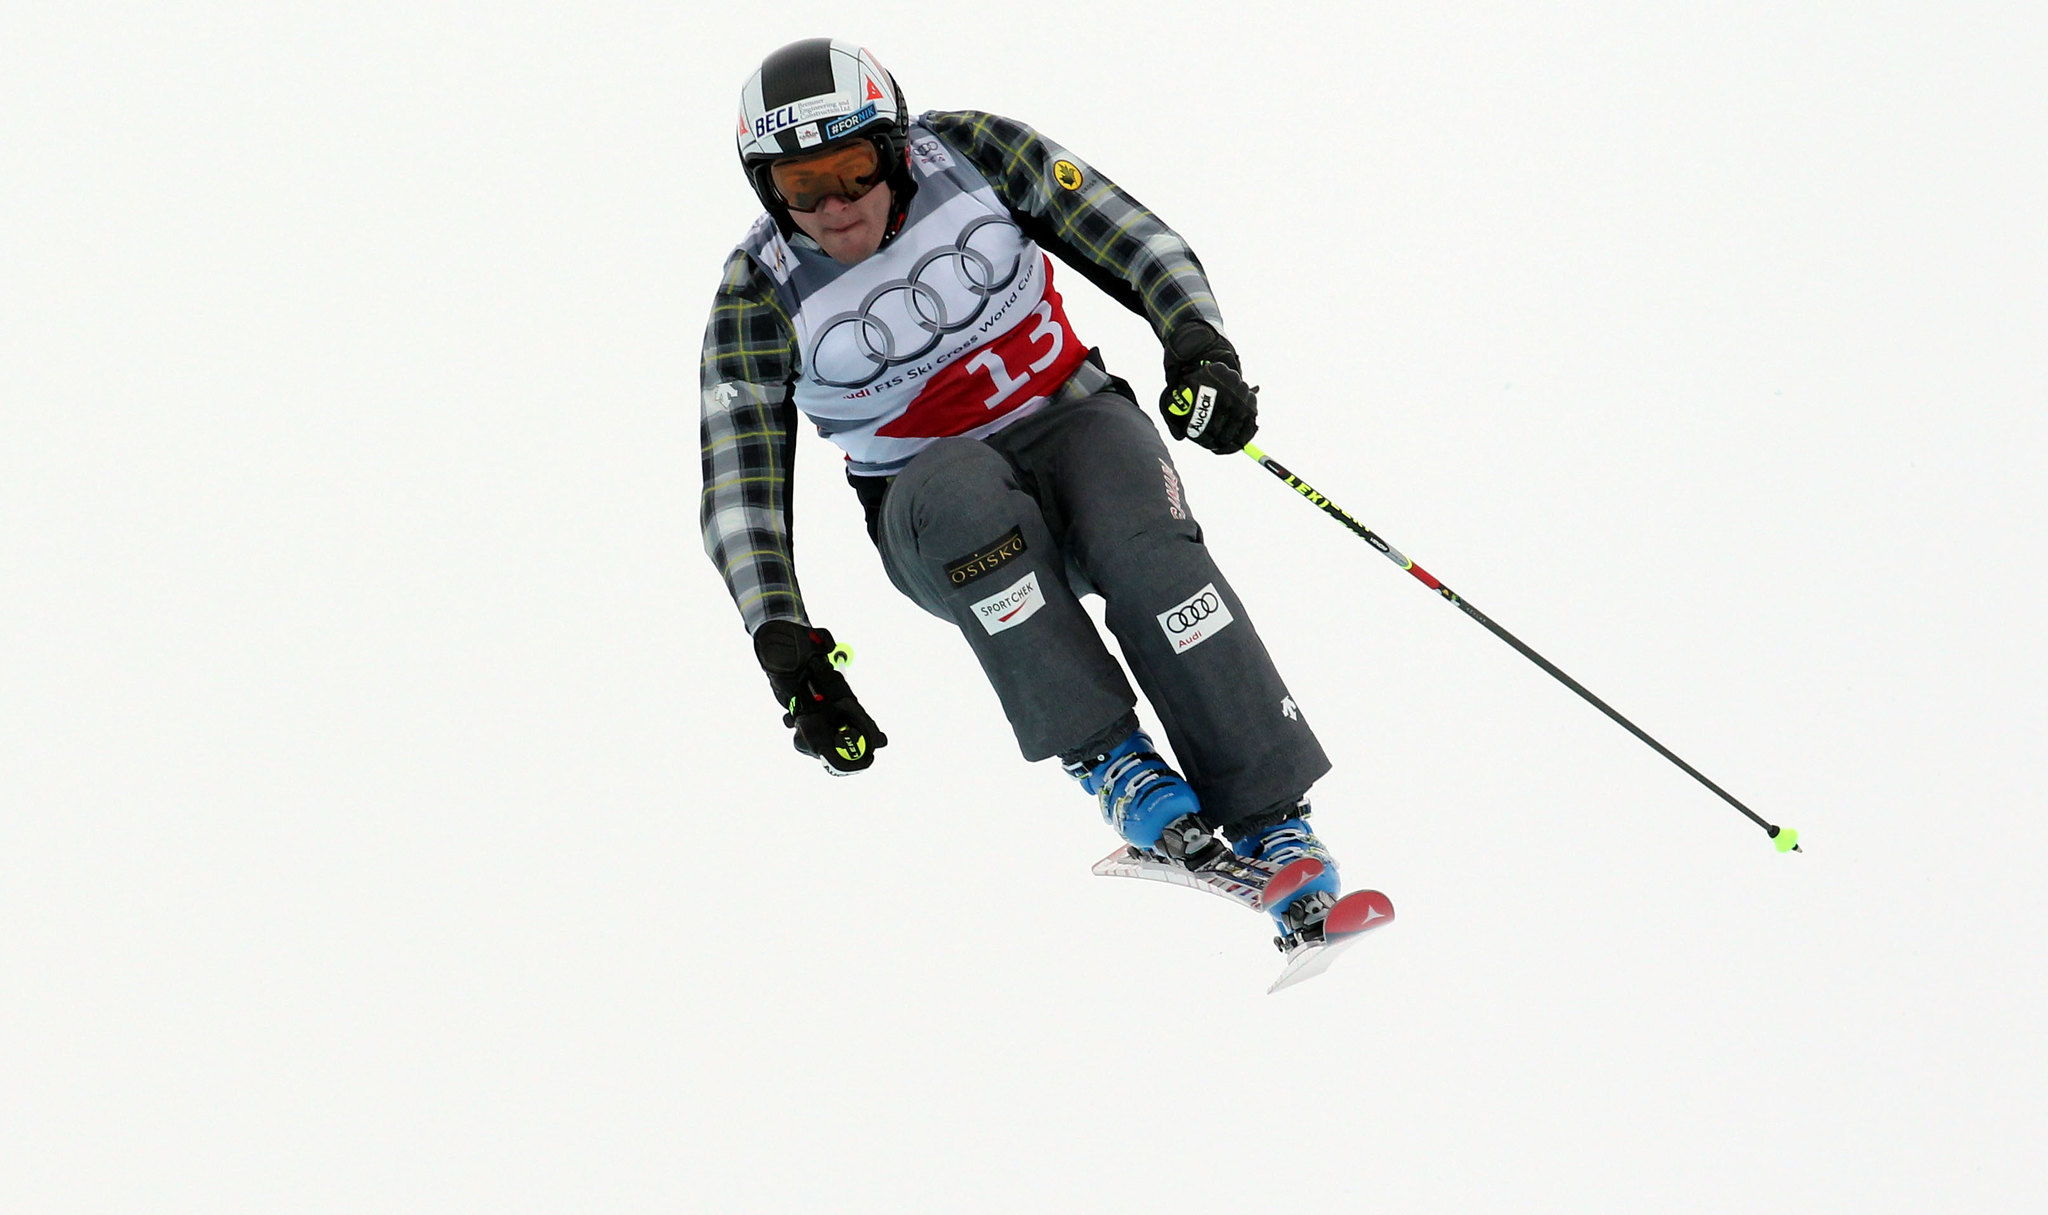 Tristan Tafel in action in Val Thorens, France